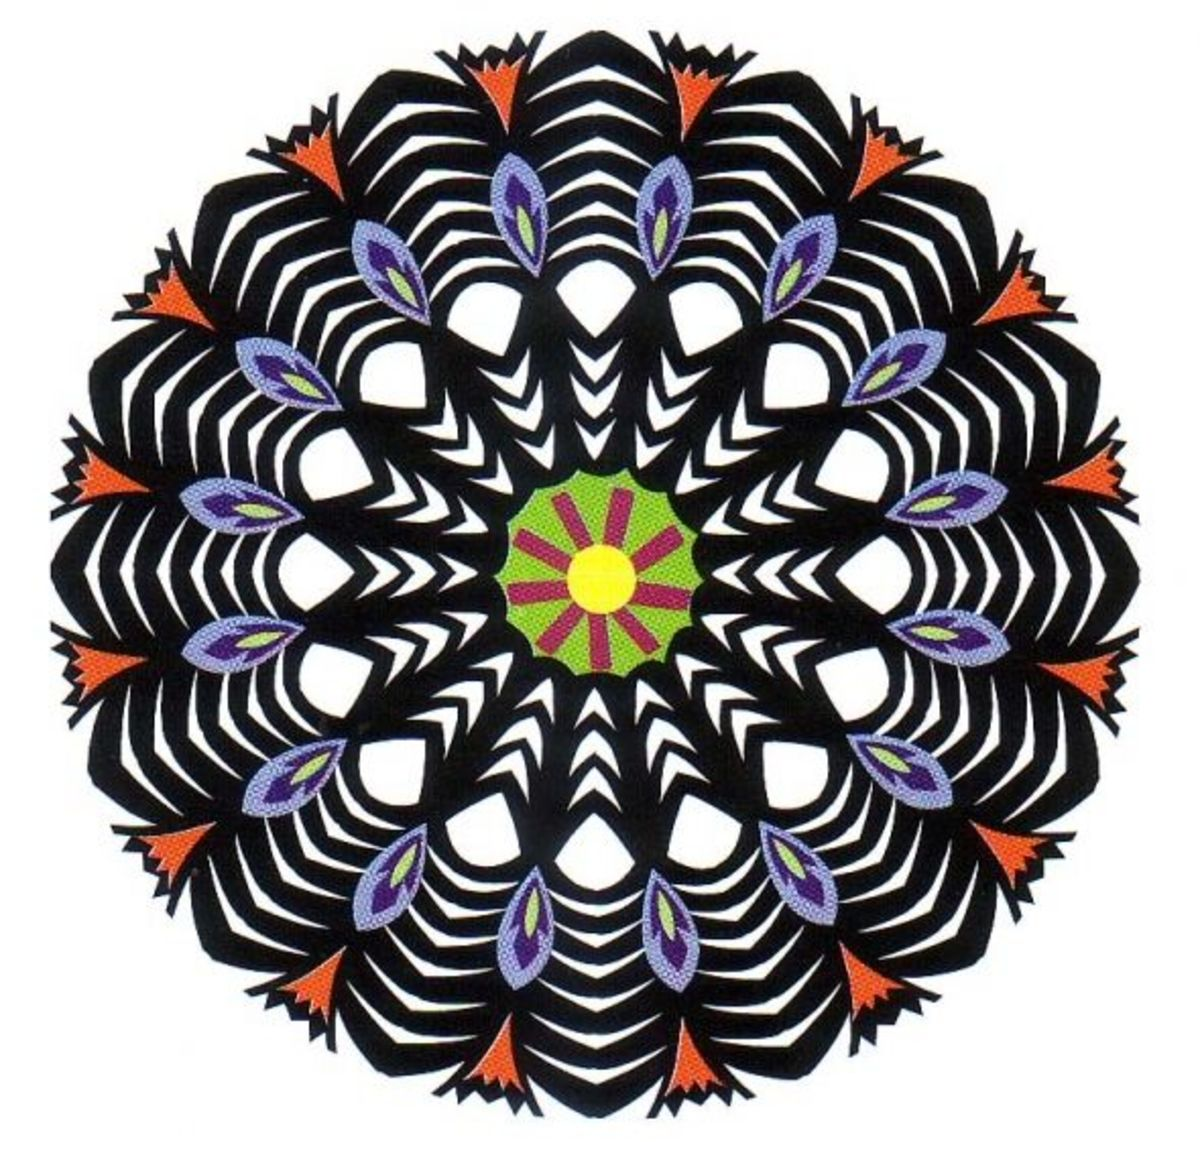 This is an example of a multicolored Gwiazda (GVYA-zdah) design with 16 repeats. Multicolored Gwiazda design are traditional to the Lowicz region of Poland.